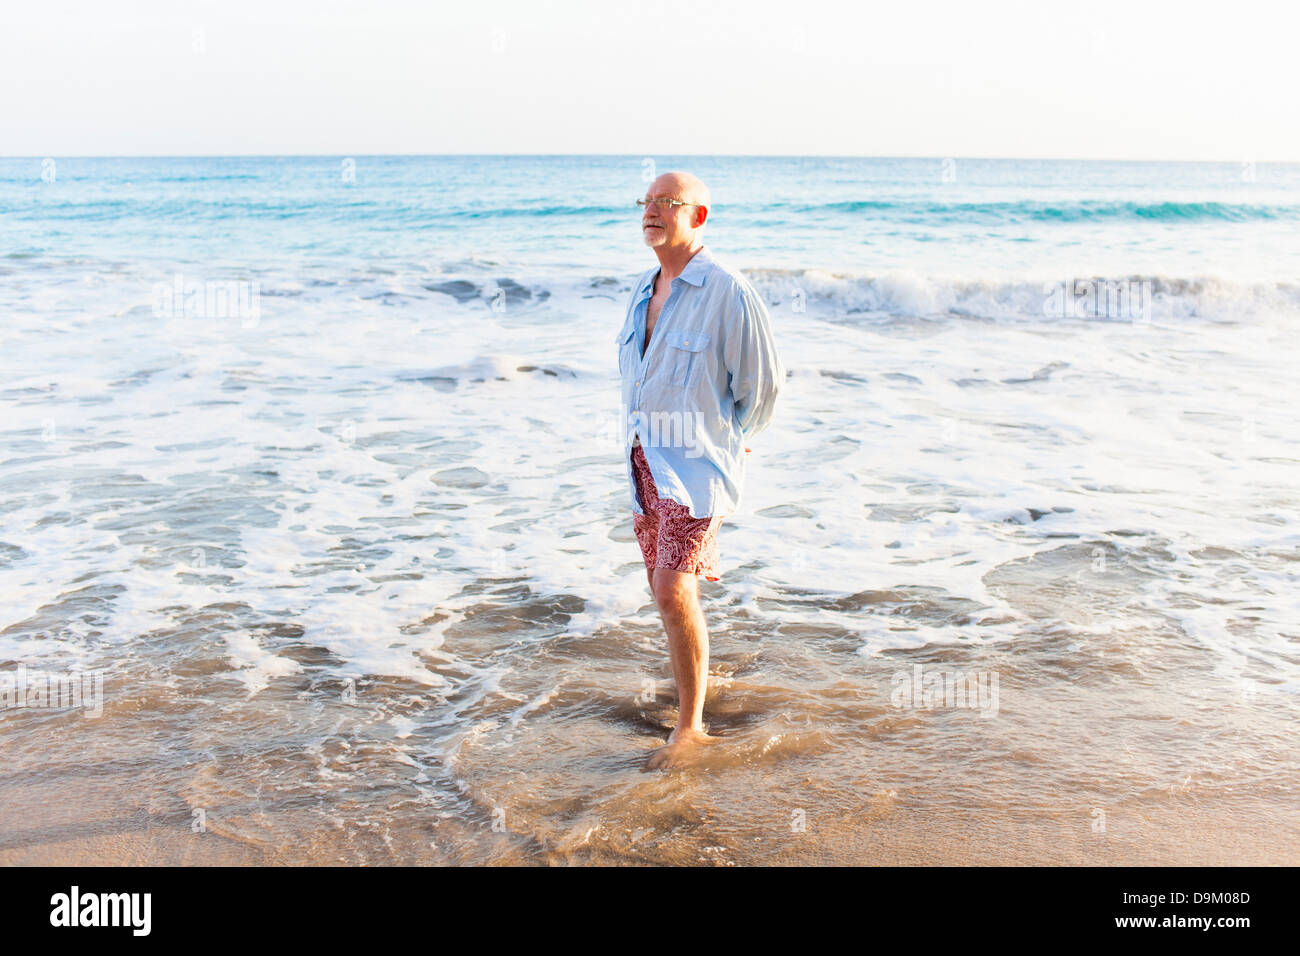 Senior man at water's edge, St Maarten, Netherlands - Stock Image